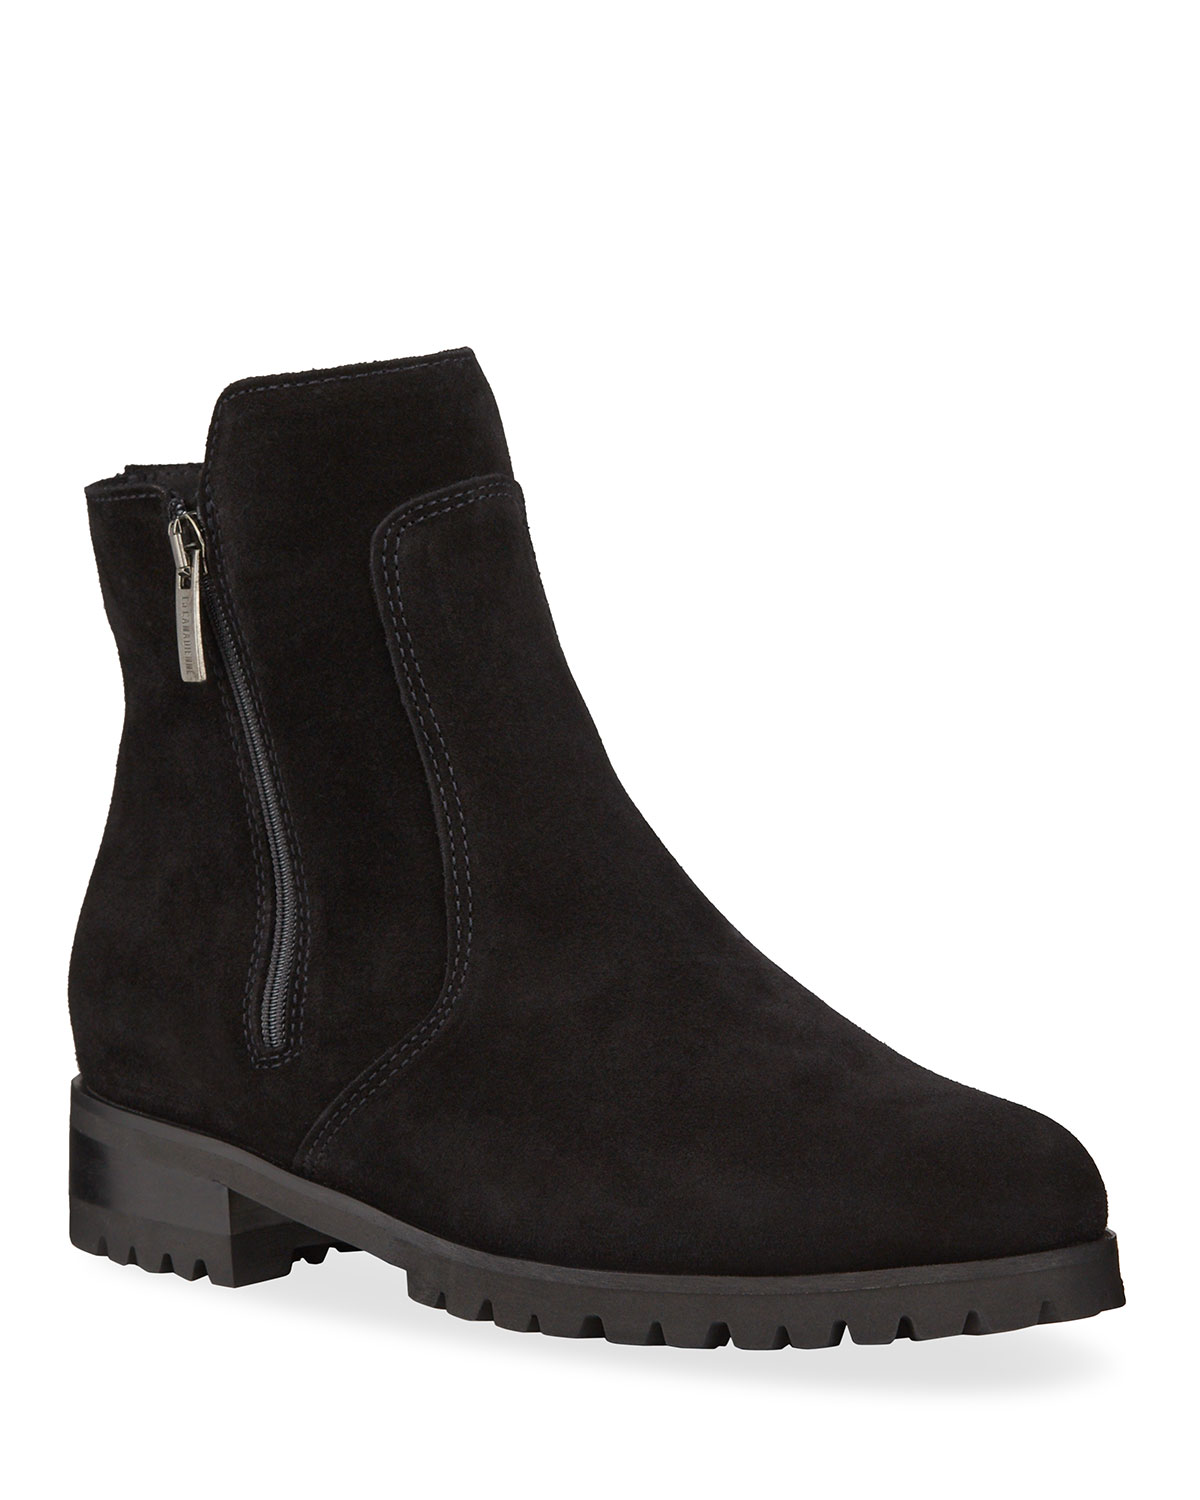 Smith Suede Dual Zip Ankle Booties